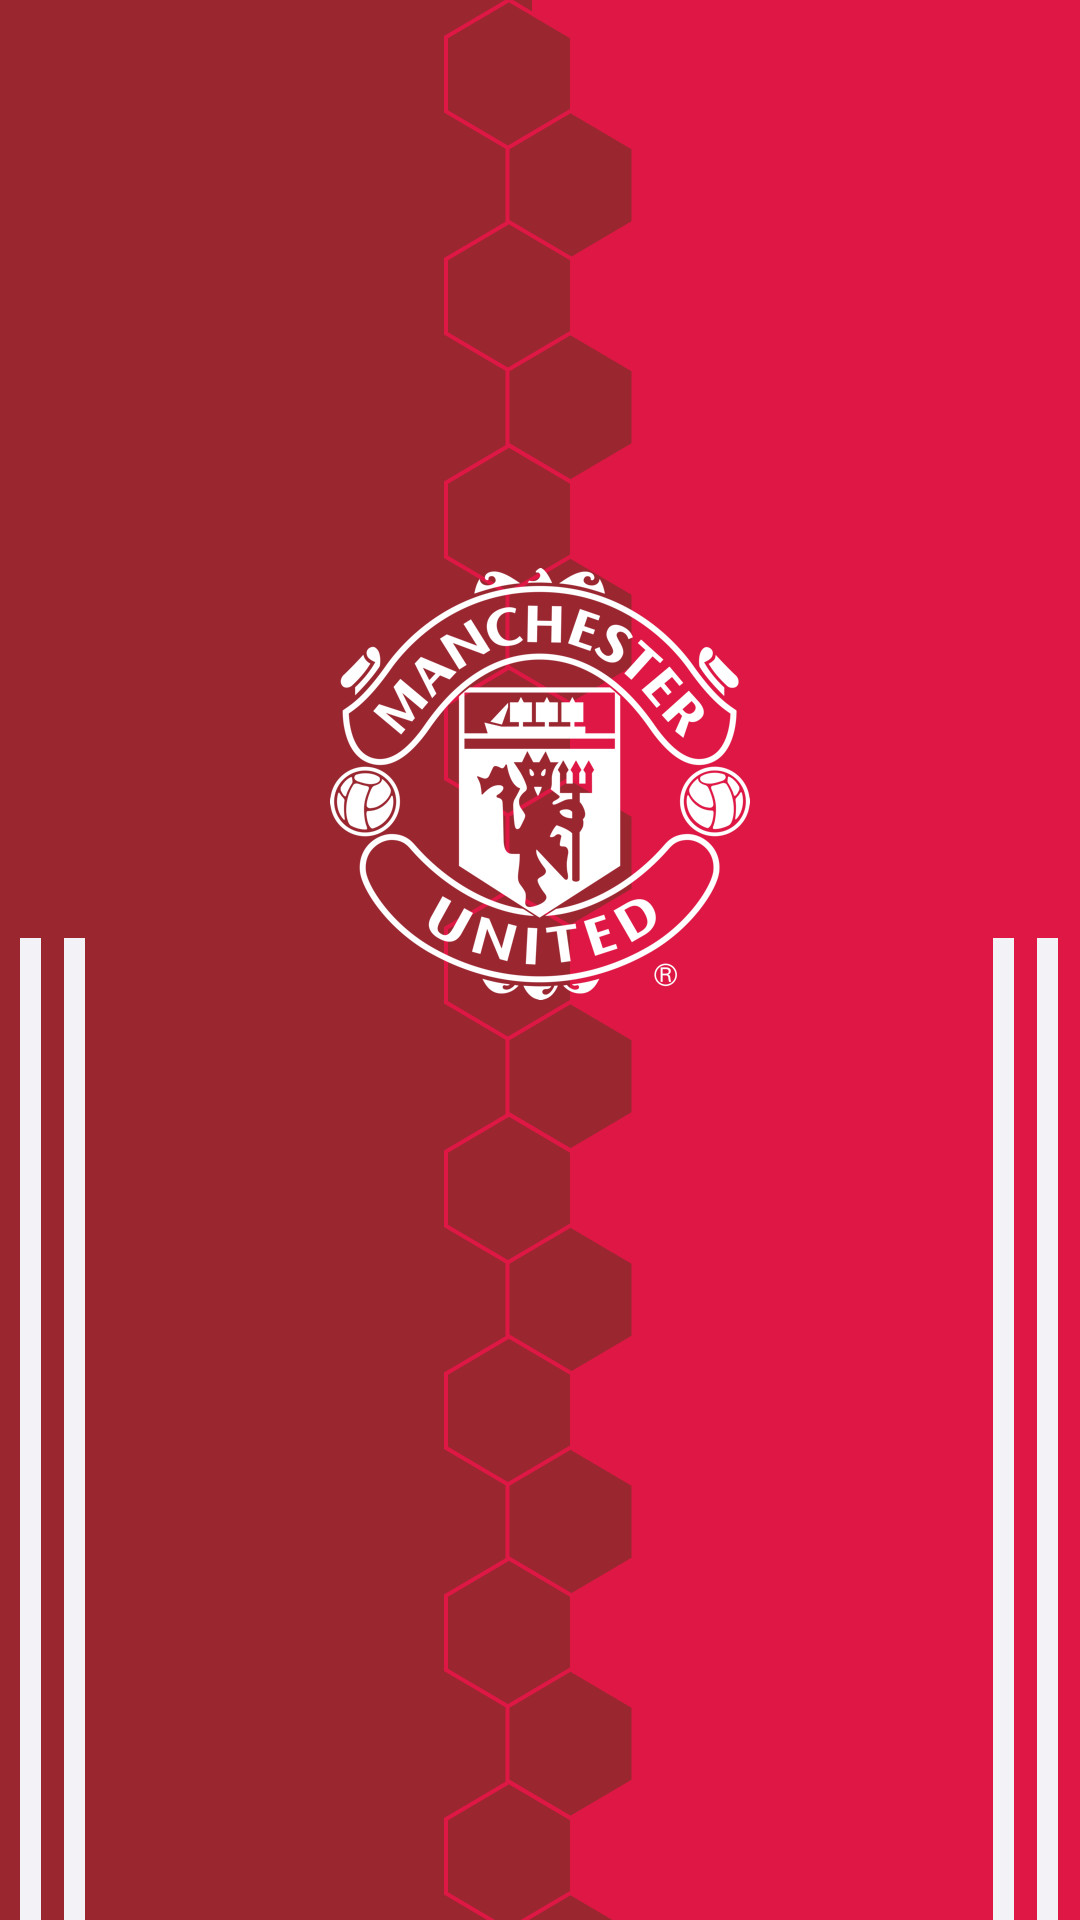 Iphone 5s Lock Screen Wallpaper For Girls Manchester United Iphone Wallpaper 66 Images